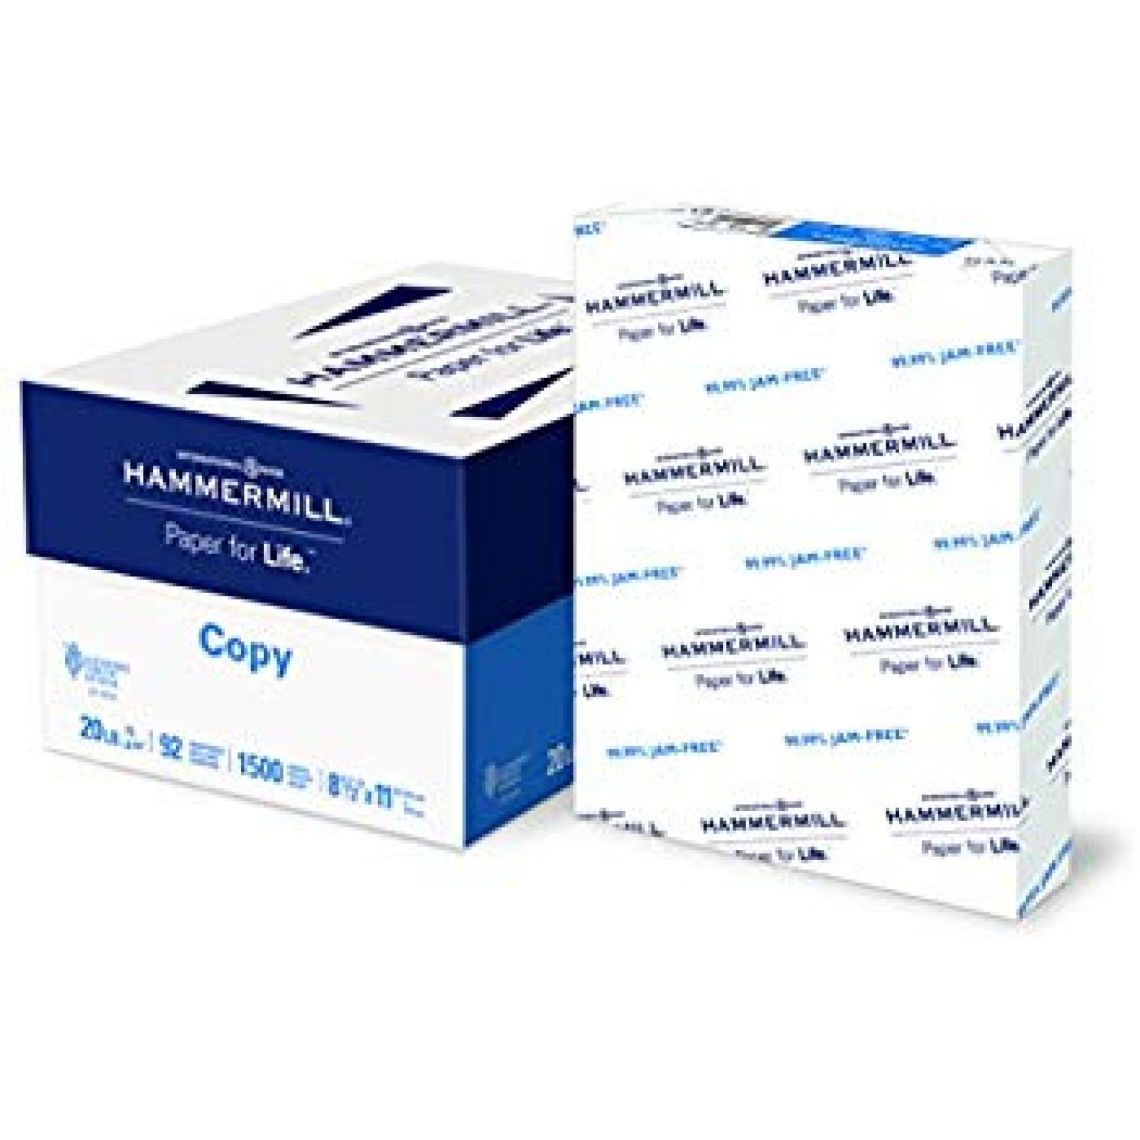 Amazon.com : Hammermill Paper, Copy Paper, 20lb, 8.5 x 11, Letter, 92 Bright, 1, 500 Sheets/3 Ream Case (113620C) Made In The USA : Office Products